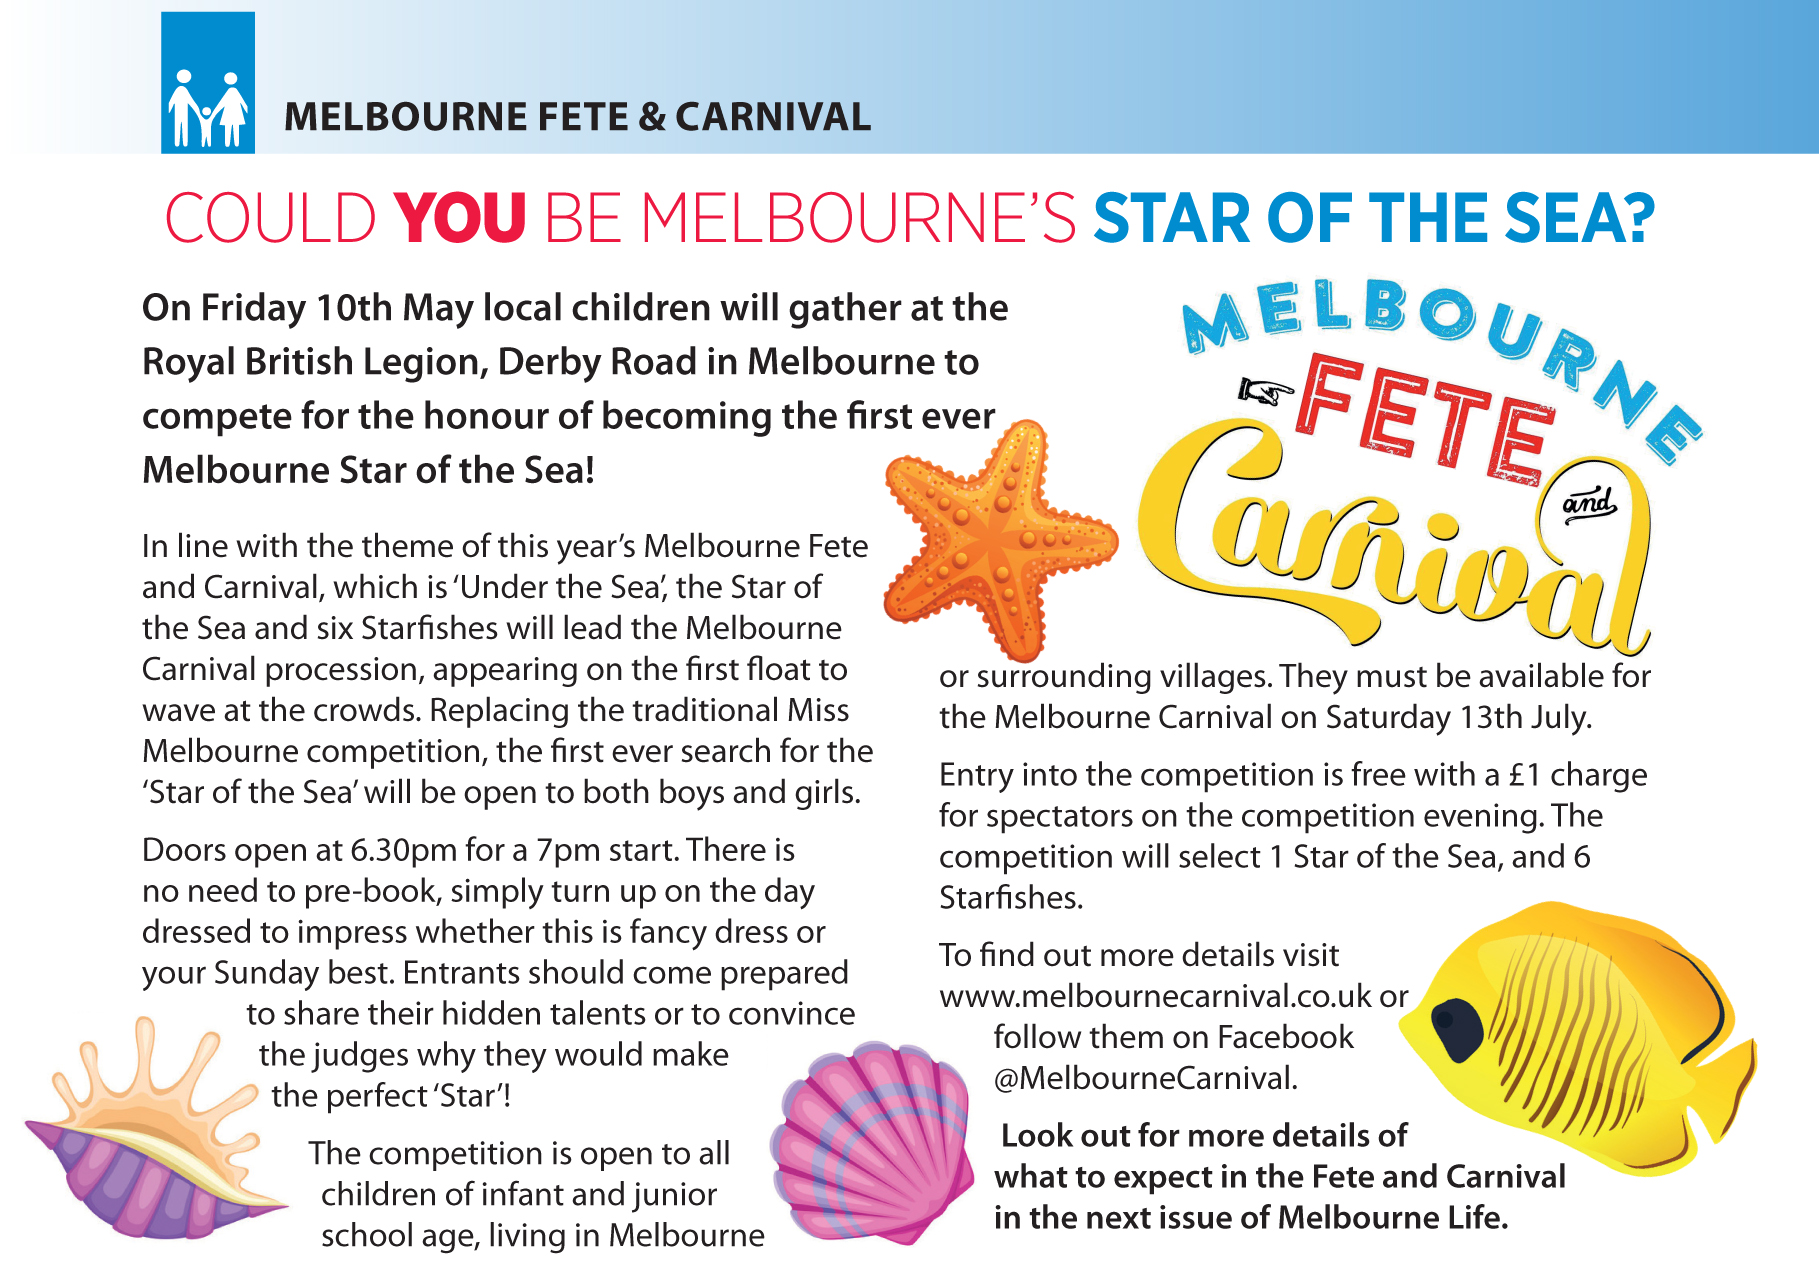 Melbourne Fete and Carnival